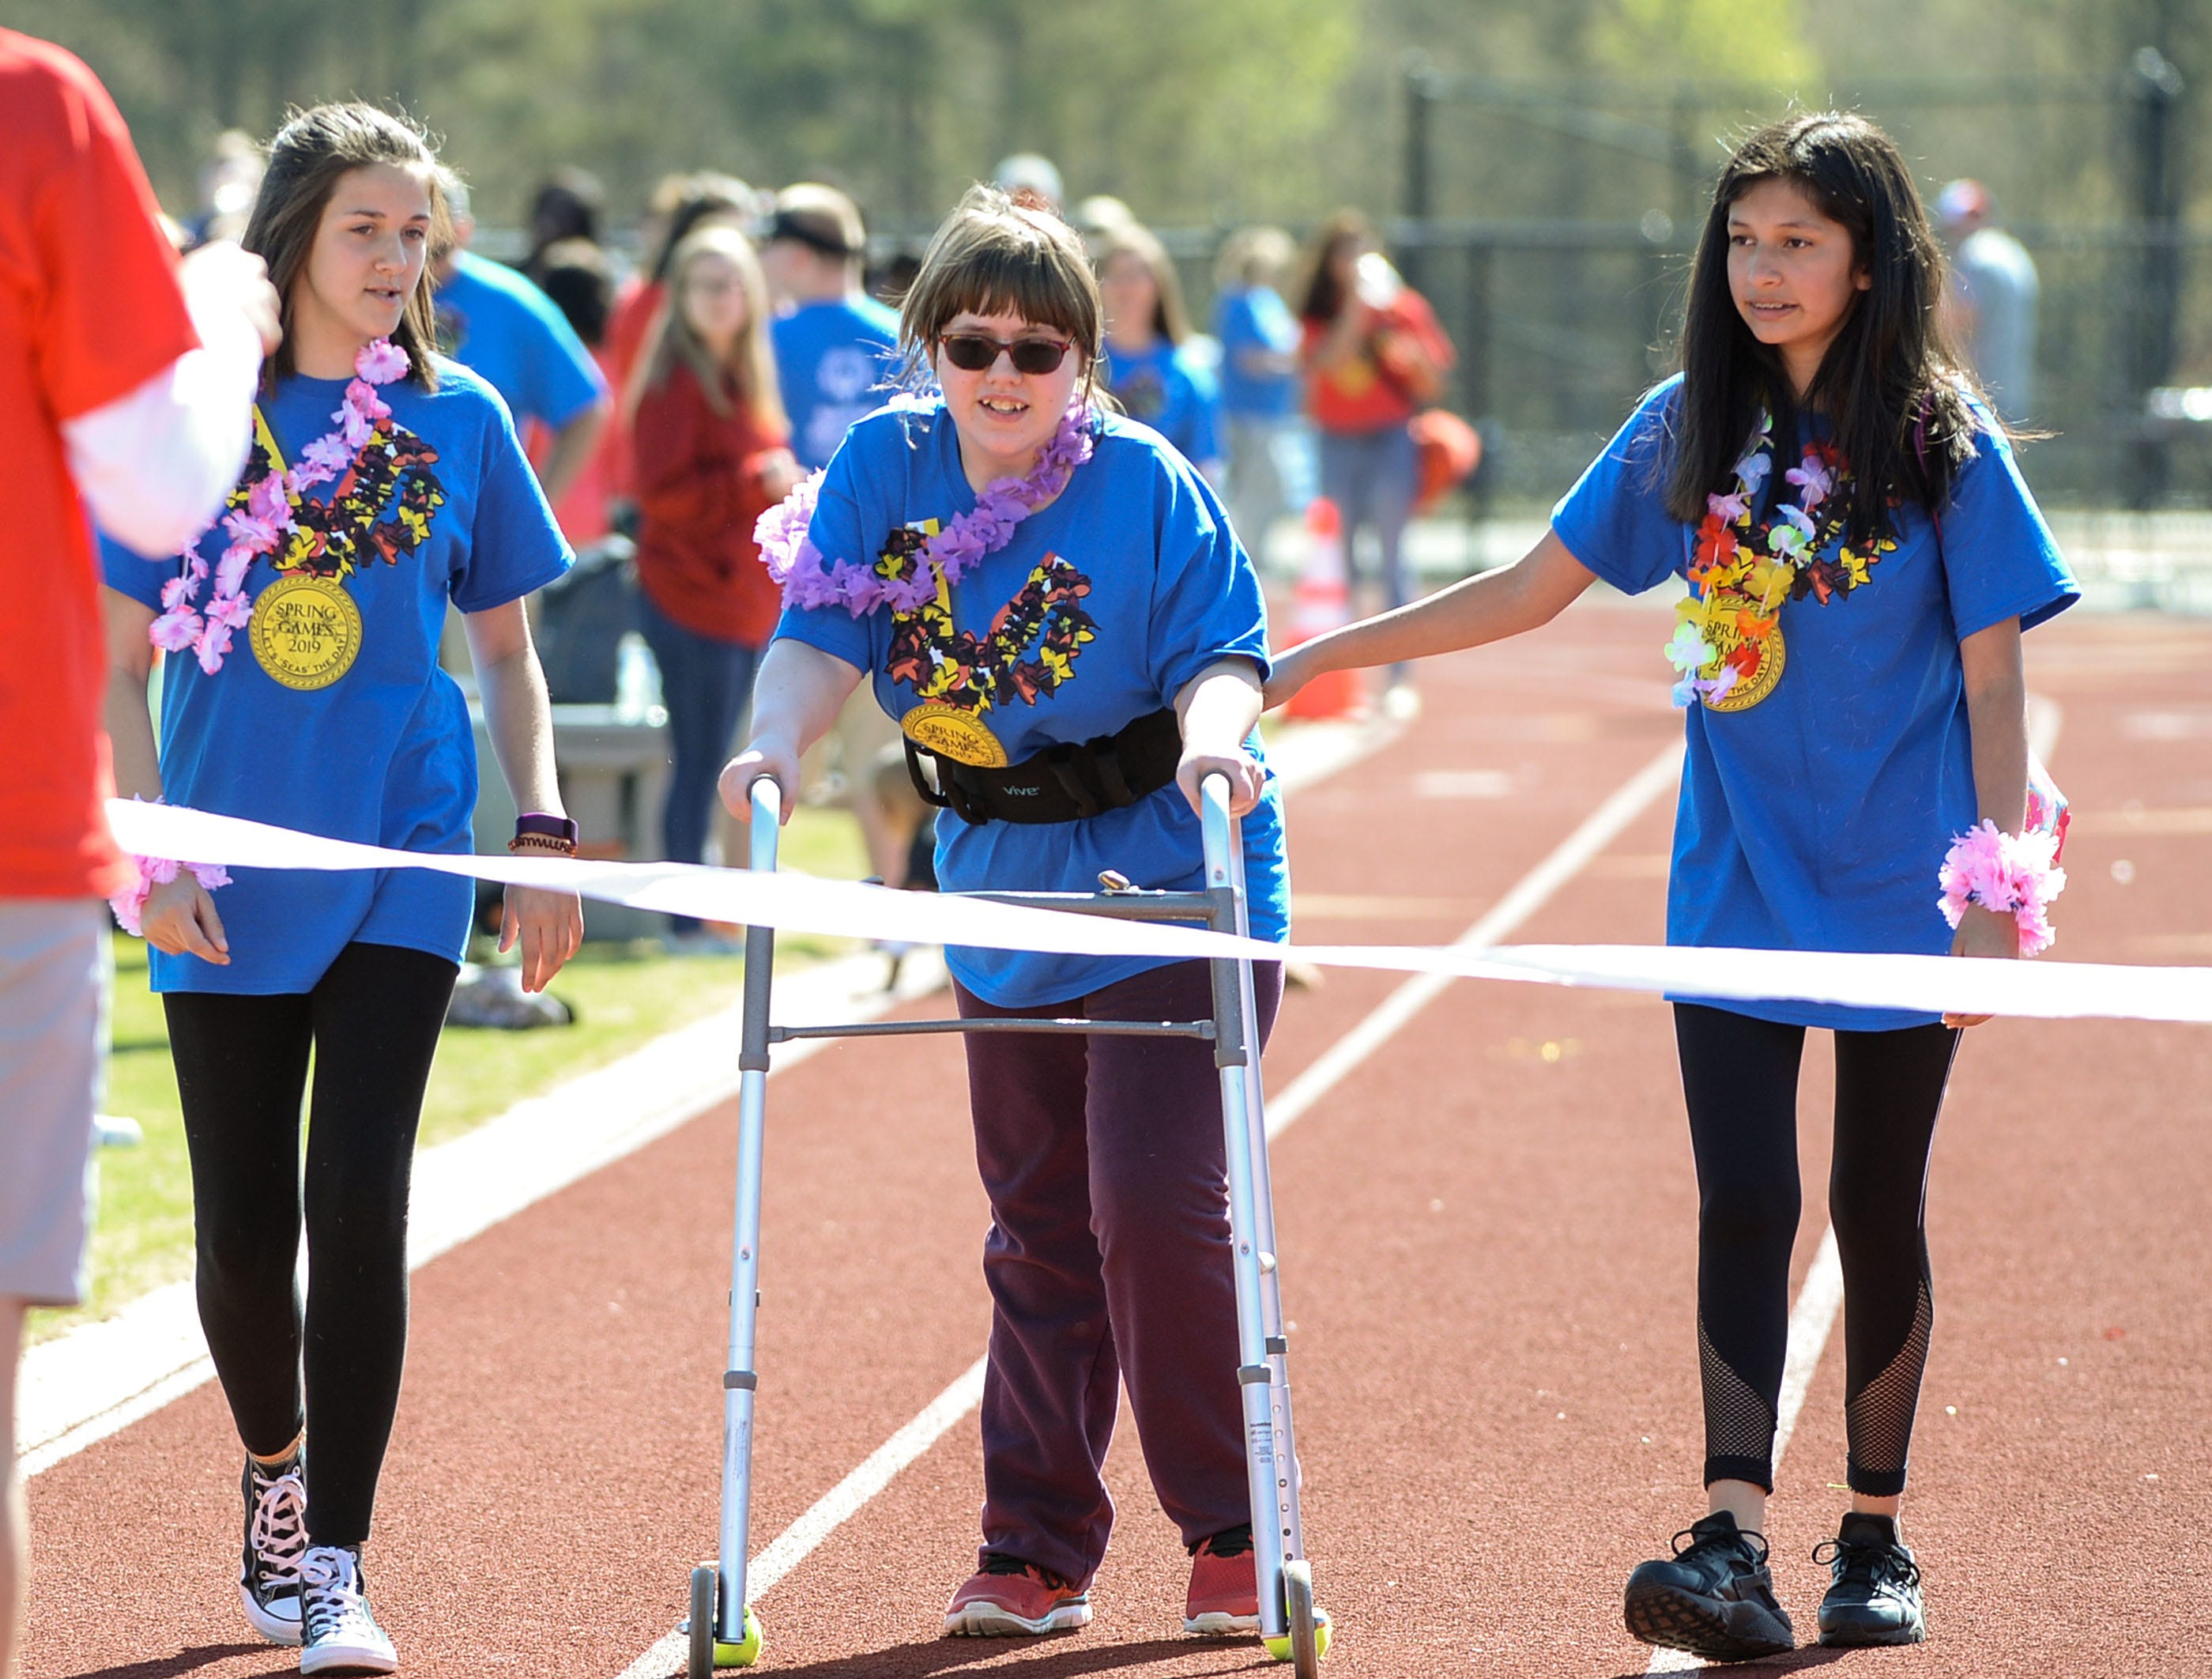 "Volunteers Leslie Terrazaas, left, and Rachel Barth, both of Palmetto Middle School, escort Hollie Woodson across the finish line in a 50 yard walk during the Special Olympics South Carolina Area 14 Spring Games at Marlee Gambrell field at Belton-Honea Path High School Wednesday. The event had more than 800 athletes and nearly 1,000 volunteers said Principal Lester McCall of Belton-Honea Path High School. ""It's a huge community event,"" he said."